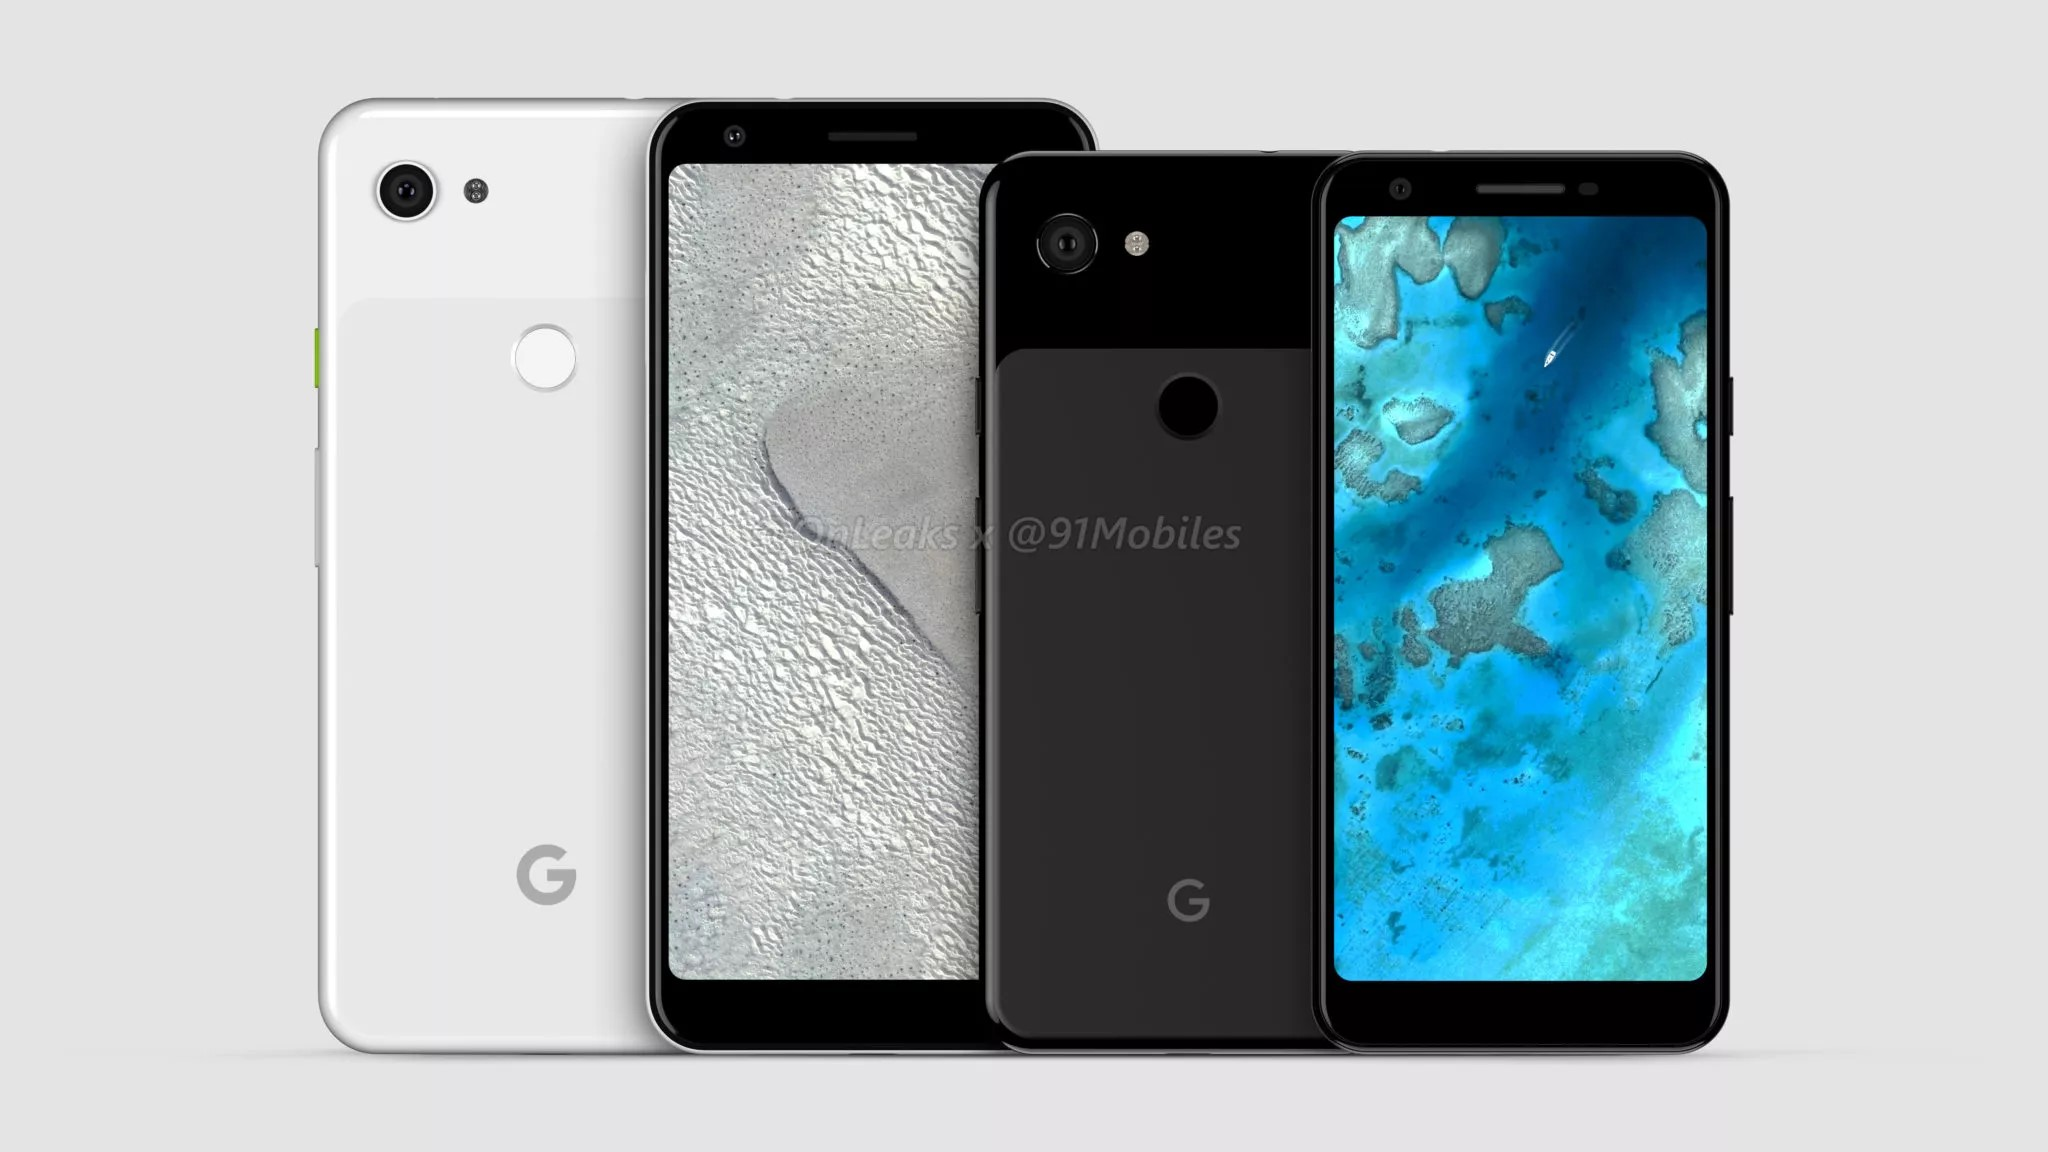 Pixel 3a and Pixel 3a XL are Likely Google's New Mid-Range Phones